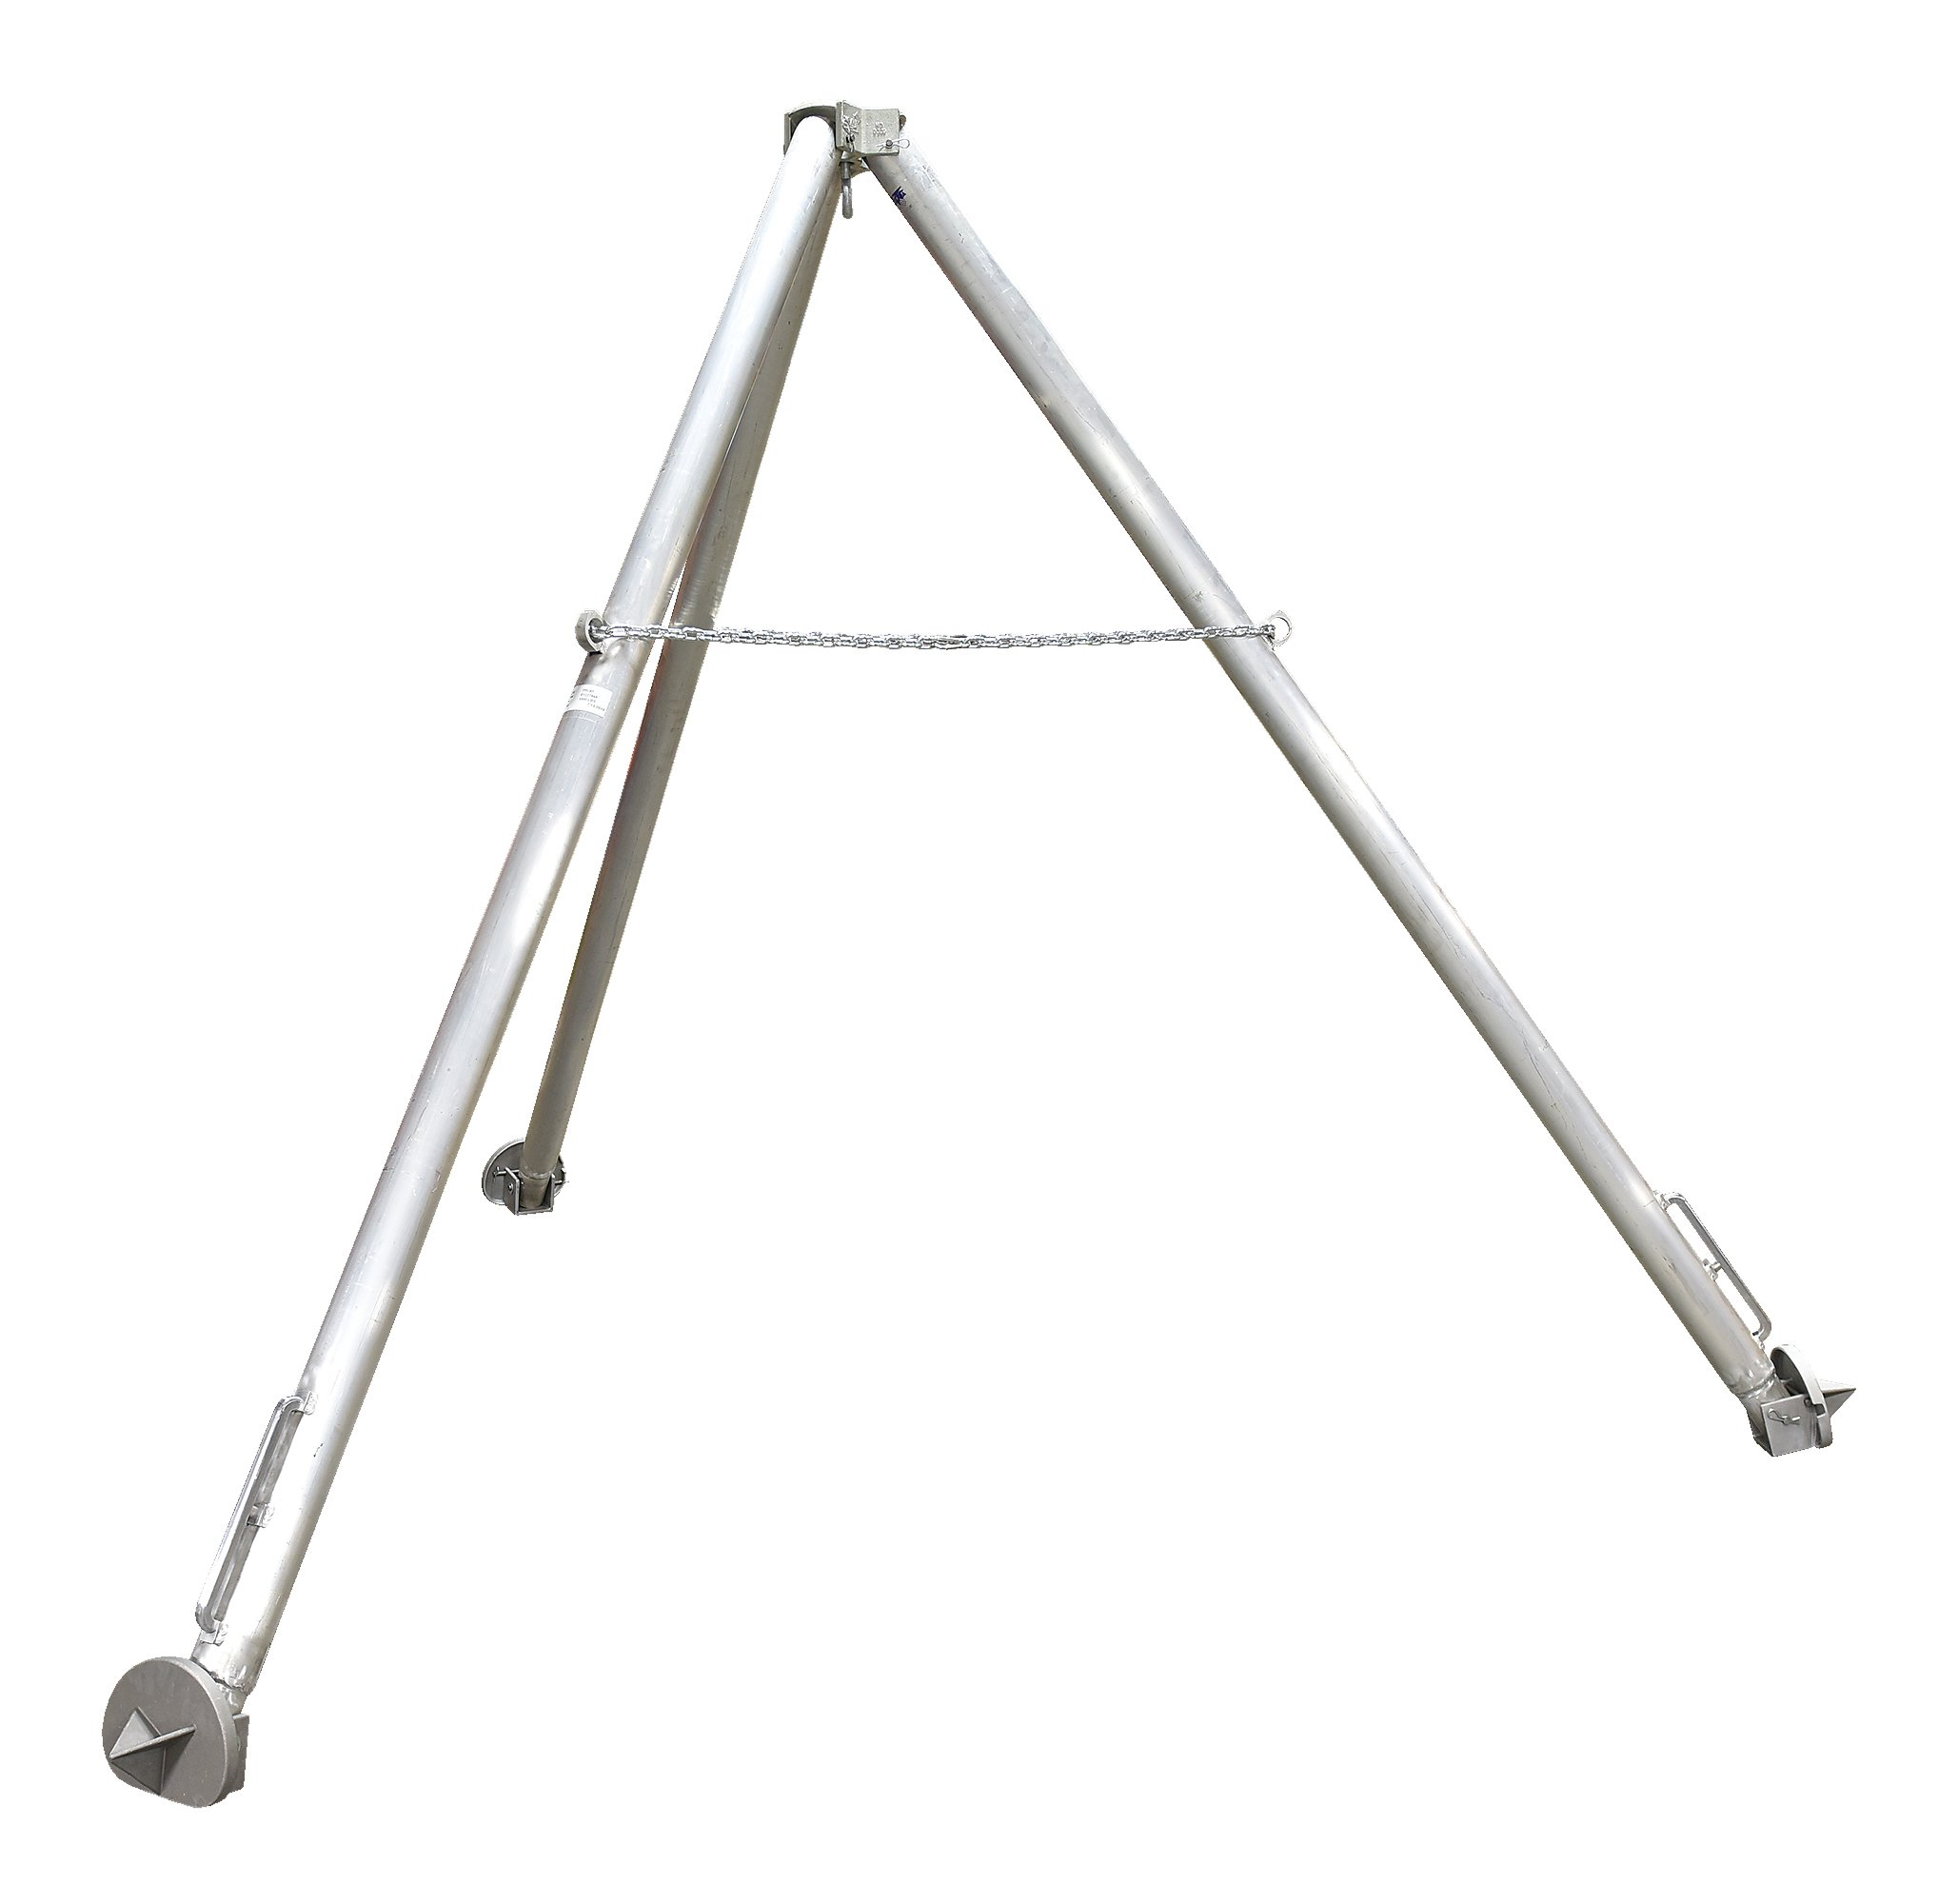 Vestil TRI-AF Aluminum Tripod Stand with Fixed Legs Color: Silver, Overall LxWxH (in.) 109 x 109 x 114, Eyelet Height (in.) 106-7/8, 1000 lb Uniform Capacity. by Vestil